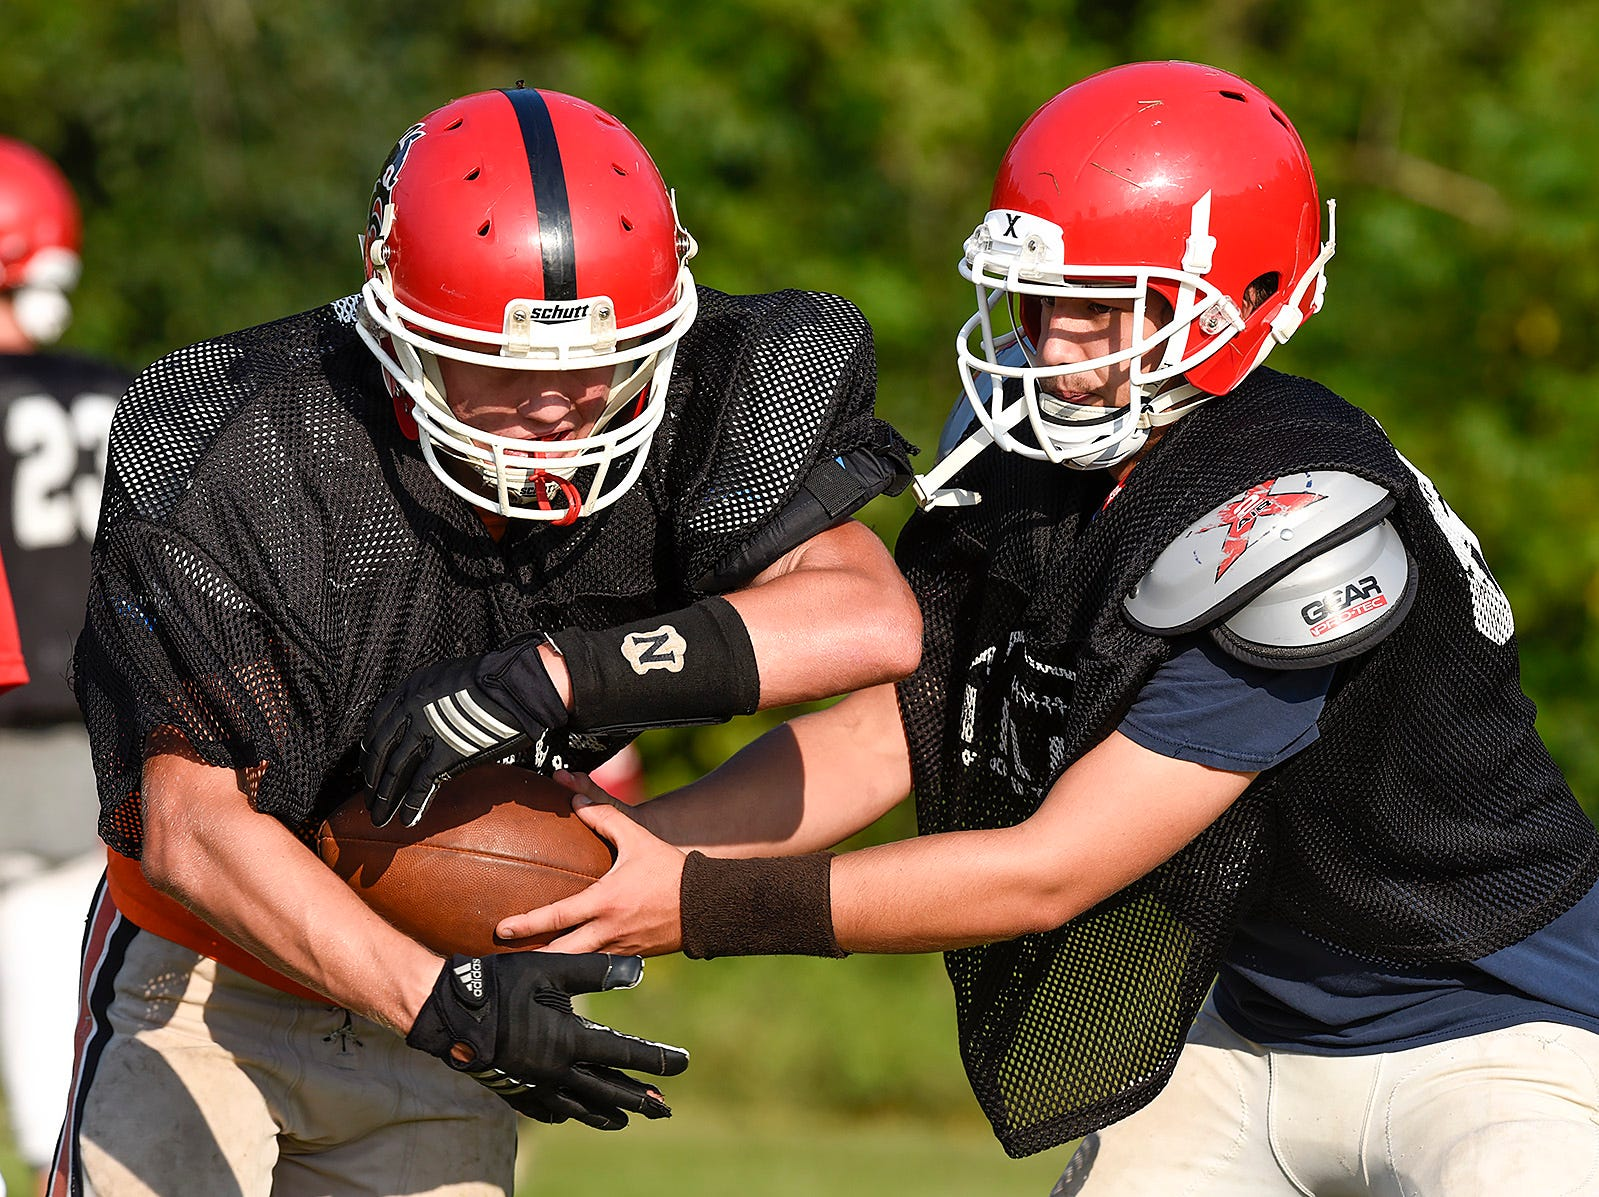 Milaca's Tyler Thebiay takes the handoff form quarterback Louis Rudolph-Munson Thursday, Aug. 16, in Milaca.